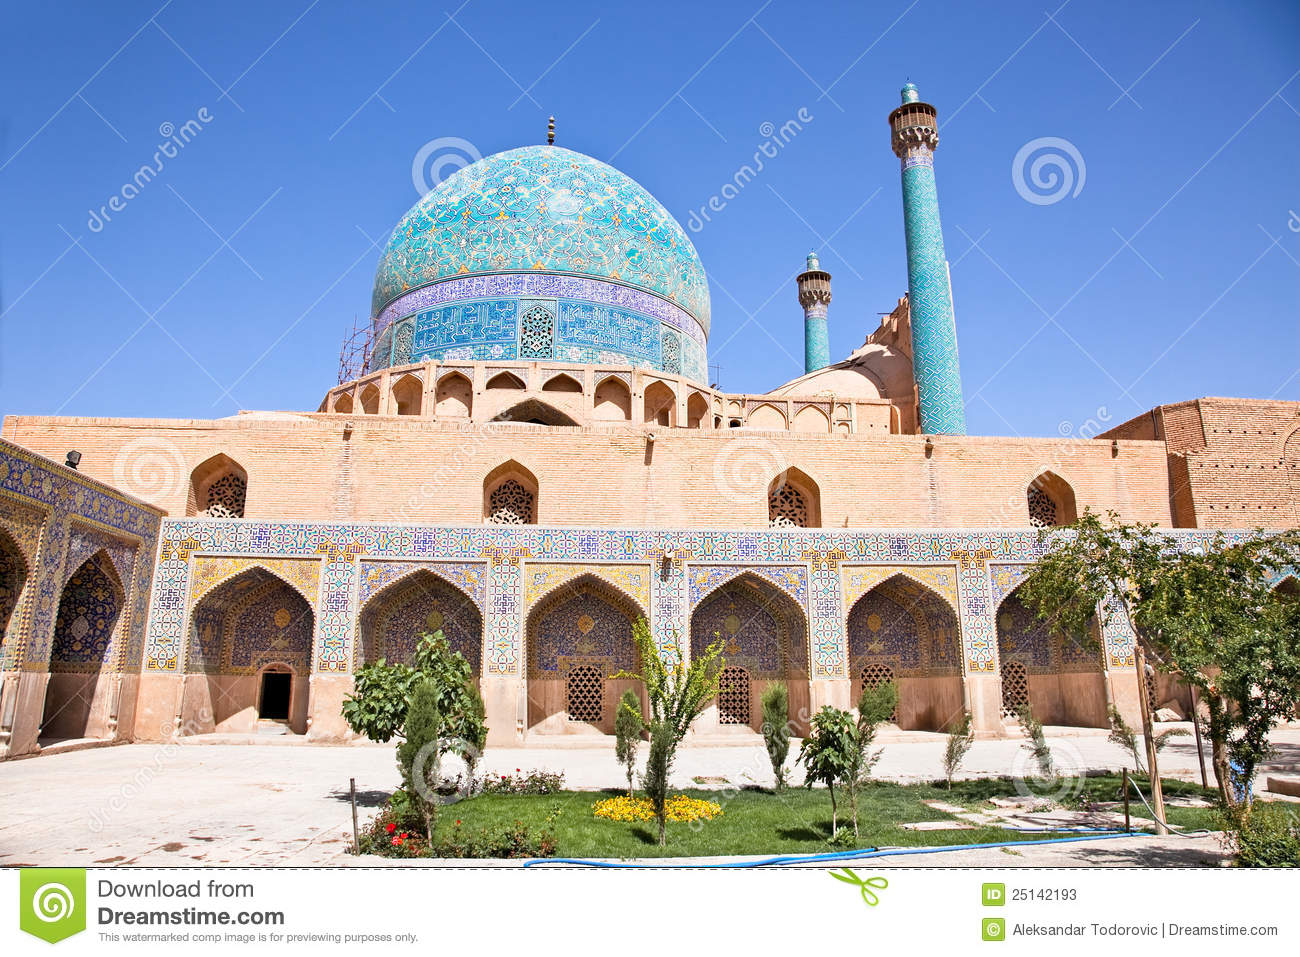 Download Beautiful Jame Abbasi Mosque (Imam Mosque) Stock Image - Image of middle, mosaic: 25142193